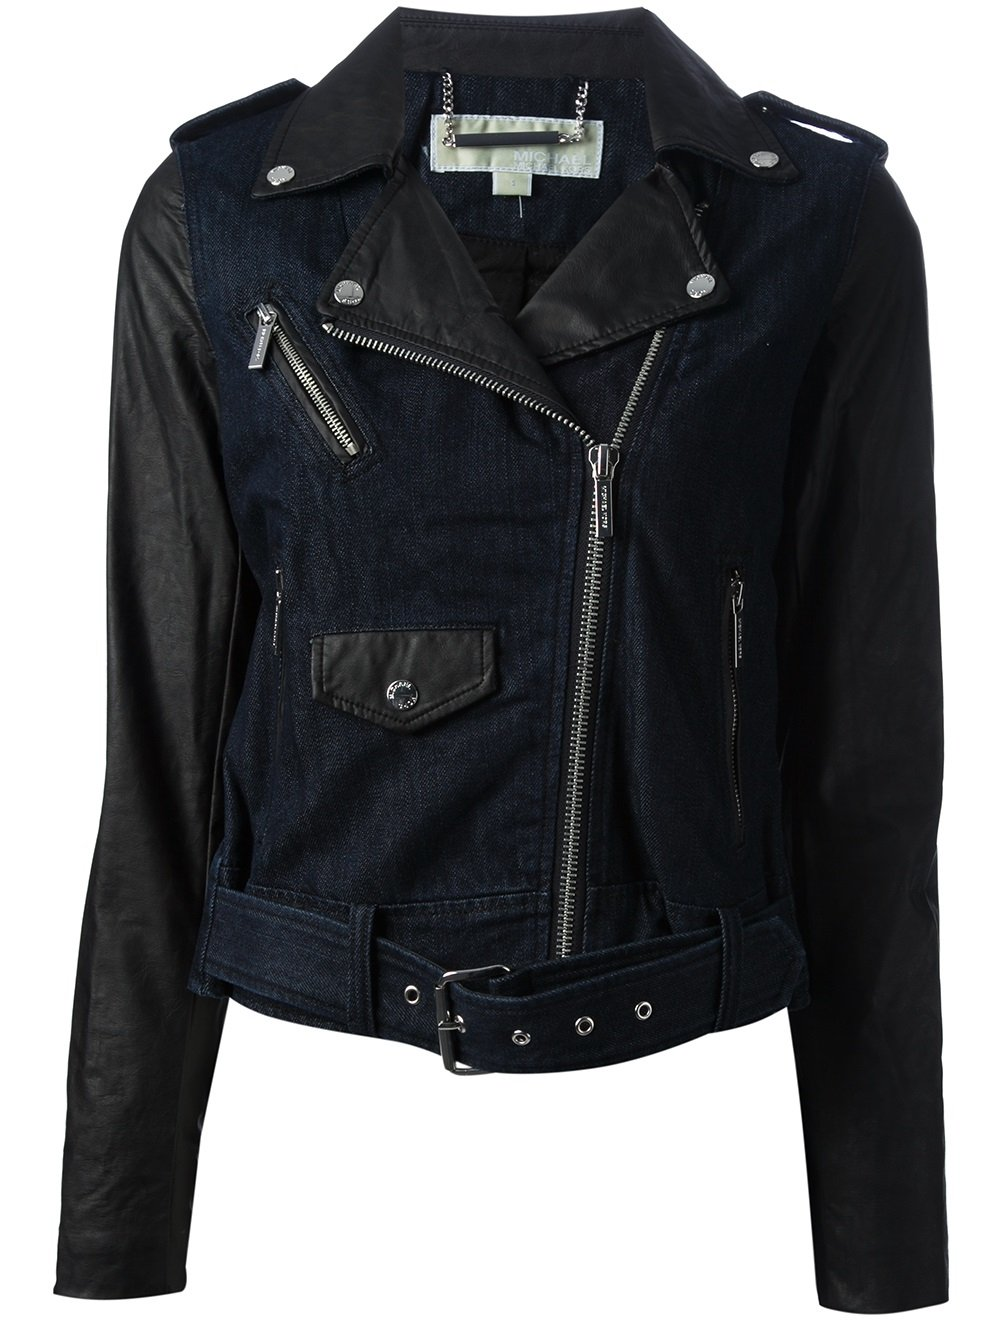 Faux leather motorcycle jackets